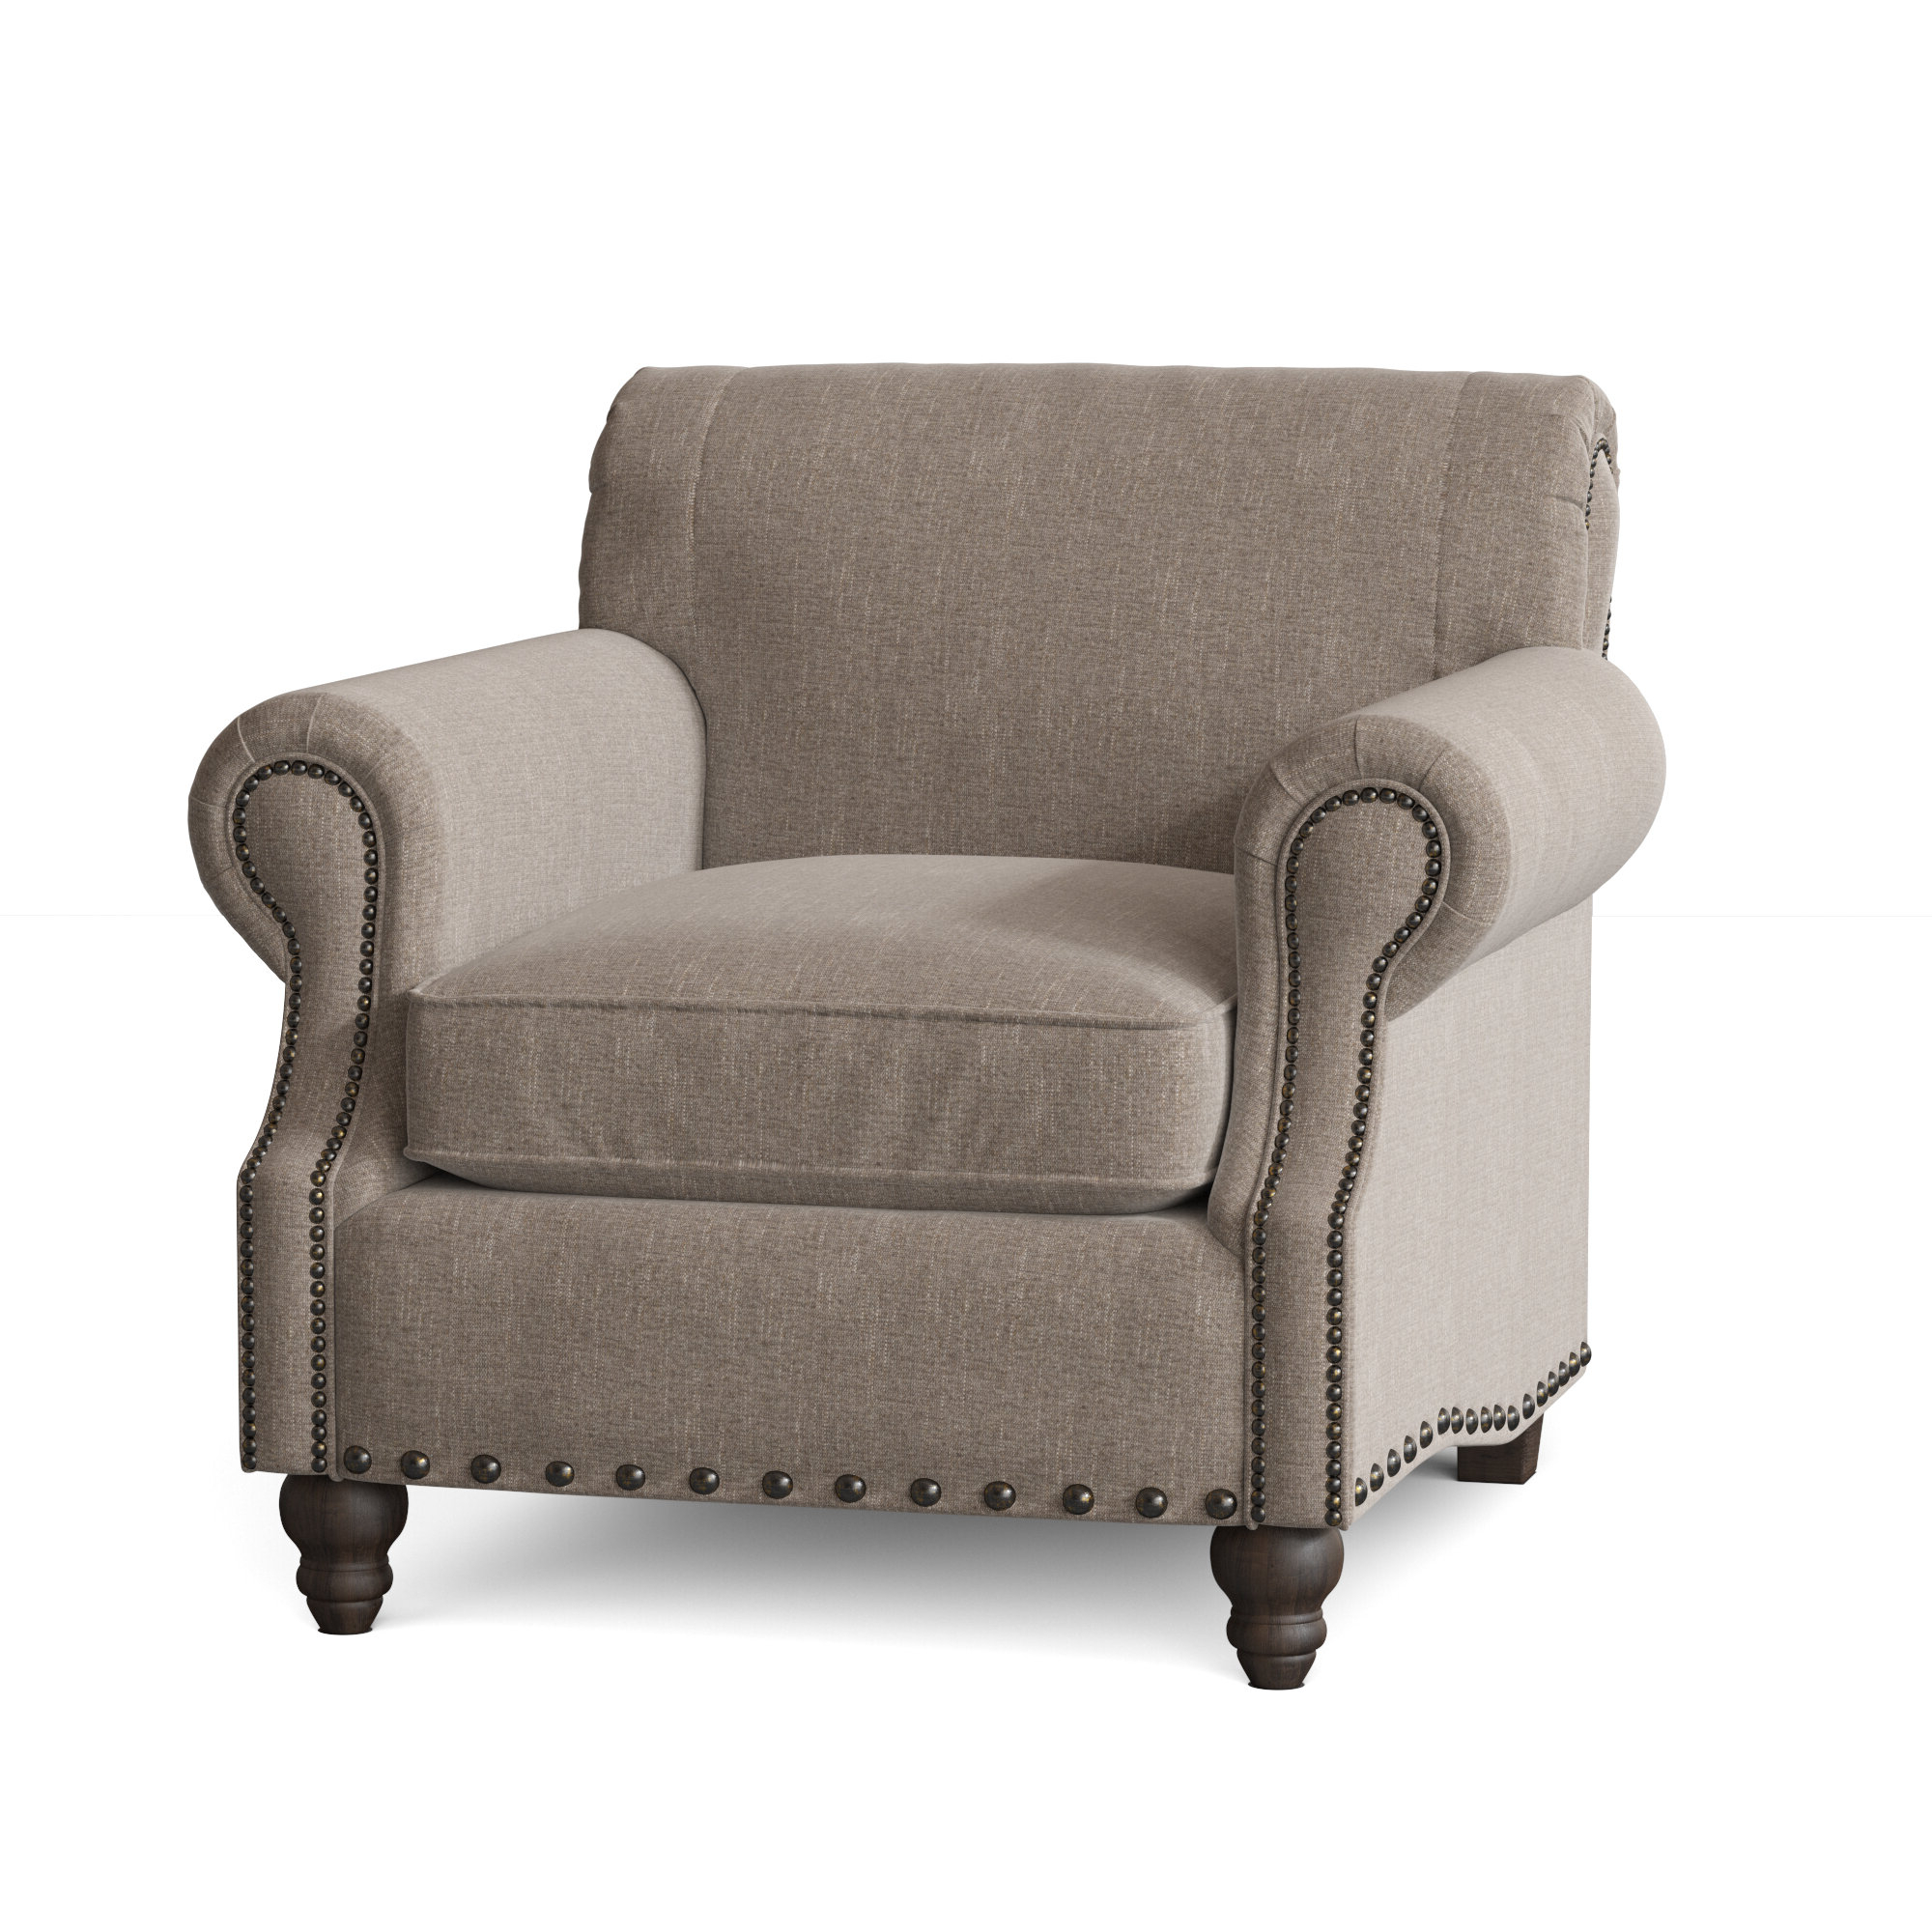 Young Armchairs By Birch Lane In Most Popular Silver Birch Lane™ Accent Chairs You'll Love In  (View 11 of 20)